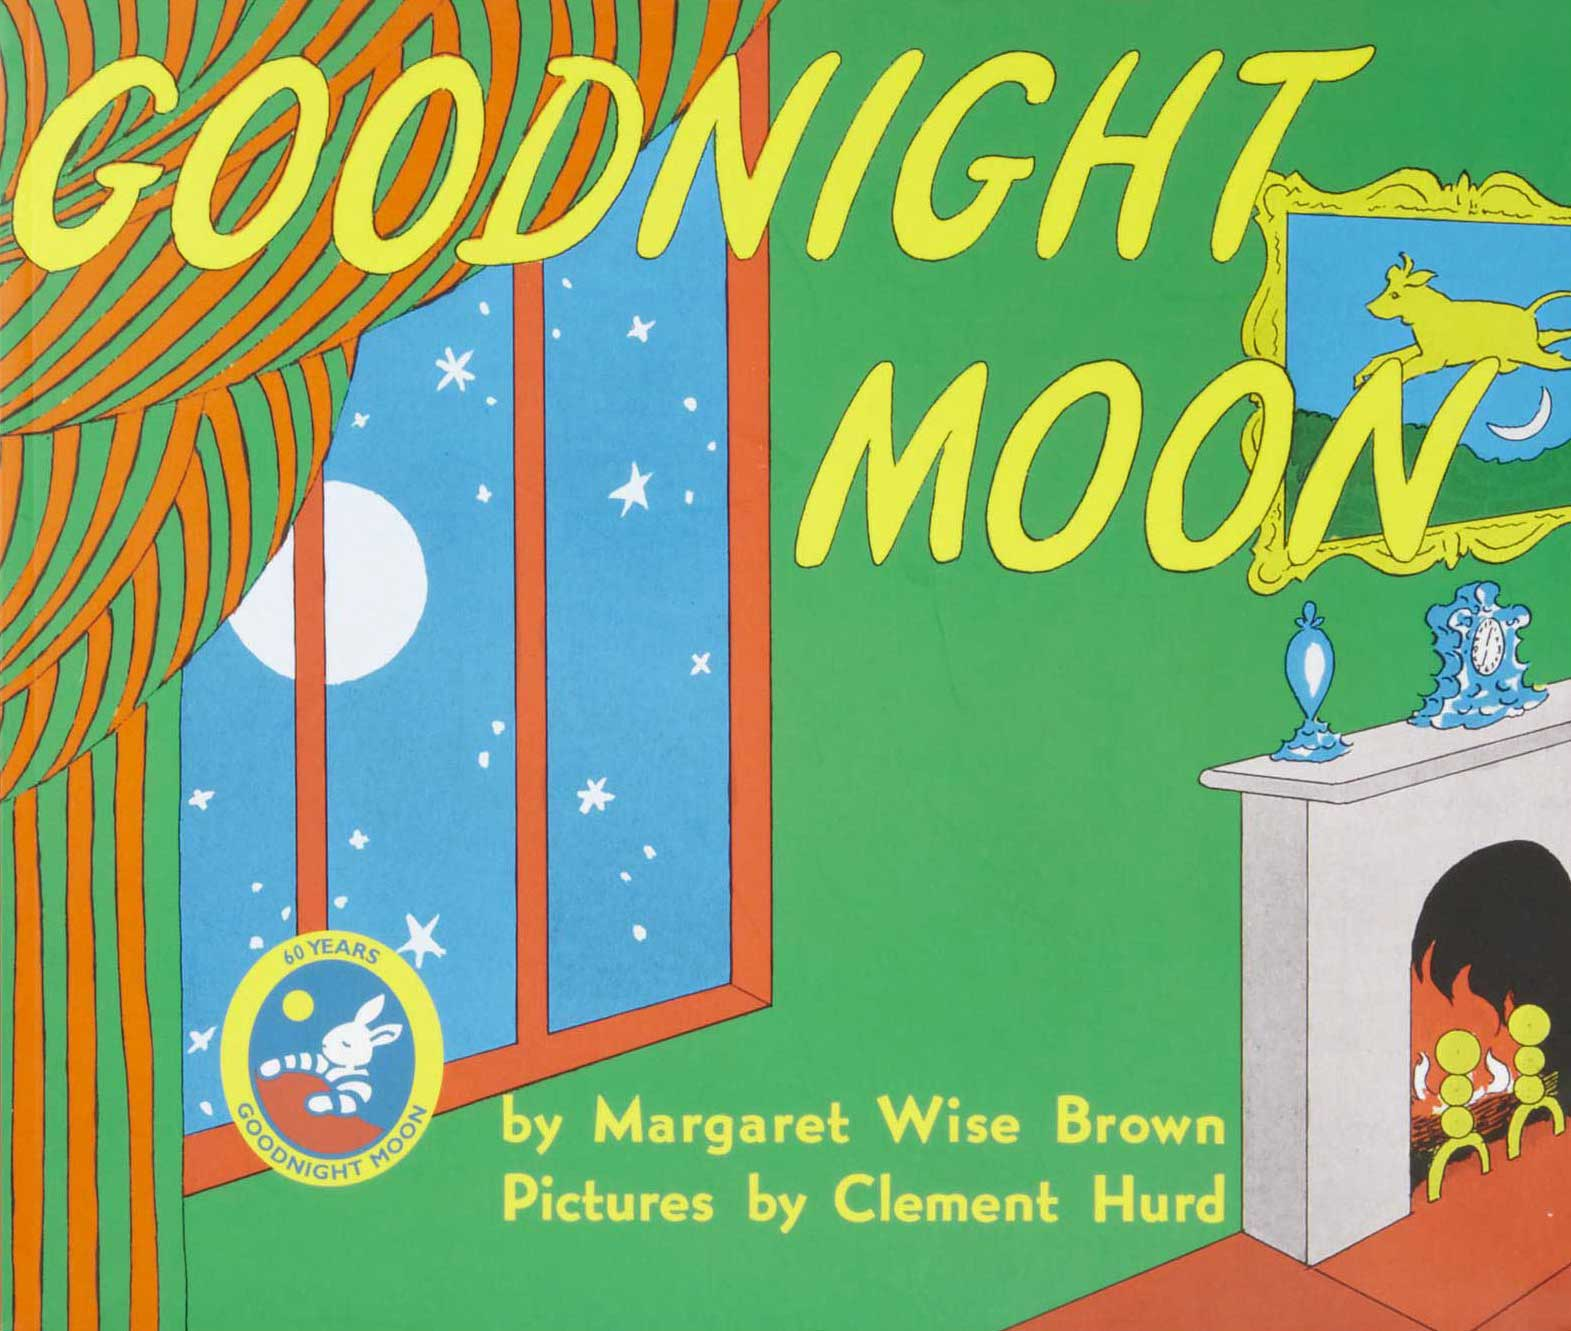 Goodnight Moon, by Margaret Wise Brown, illustrations by Clement Hurd.                                                                                                                            Somewhere a child is being put to sleep right now to Brown's soothing, repetitive cadences. While the lines may be etched in every parent's memory, Hurd's illustrations, with their quirky hidden jokes, provide amusement on the thousandth reading.                                                                                                                            Buy now: Goodnight Moon